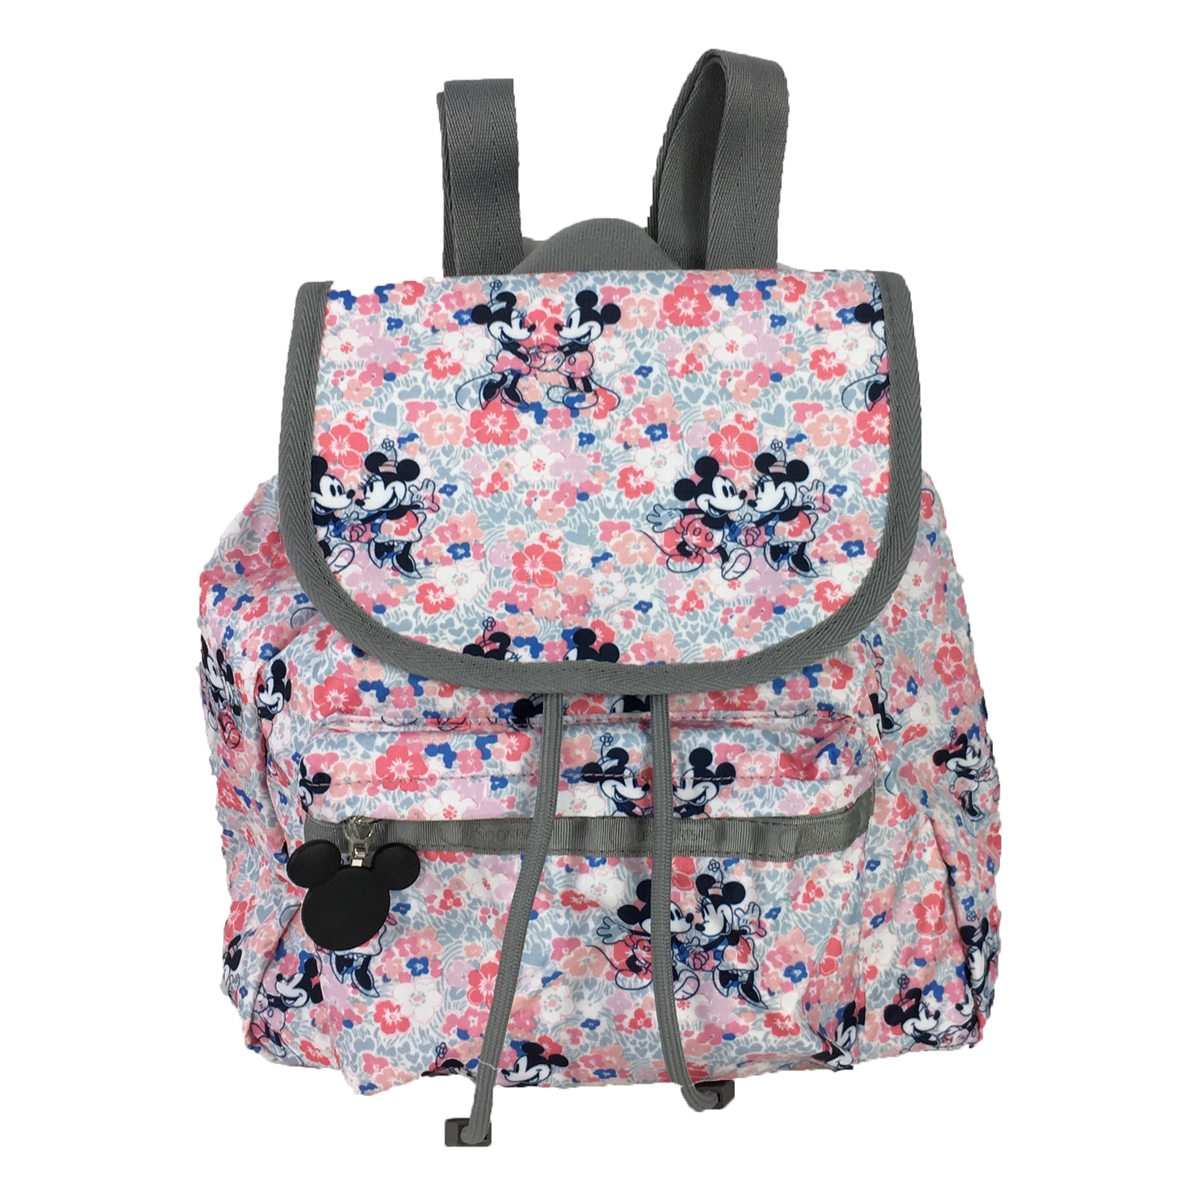 39847540a7b LeSportsac x Disney Minnie Mouse Small Edie Backpack